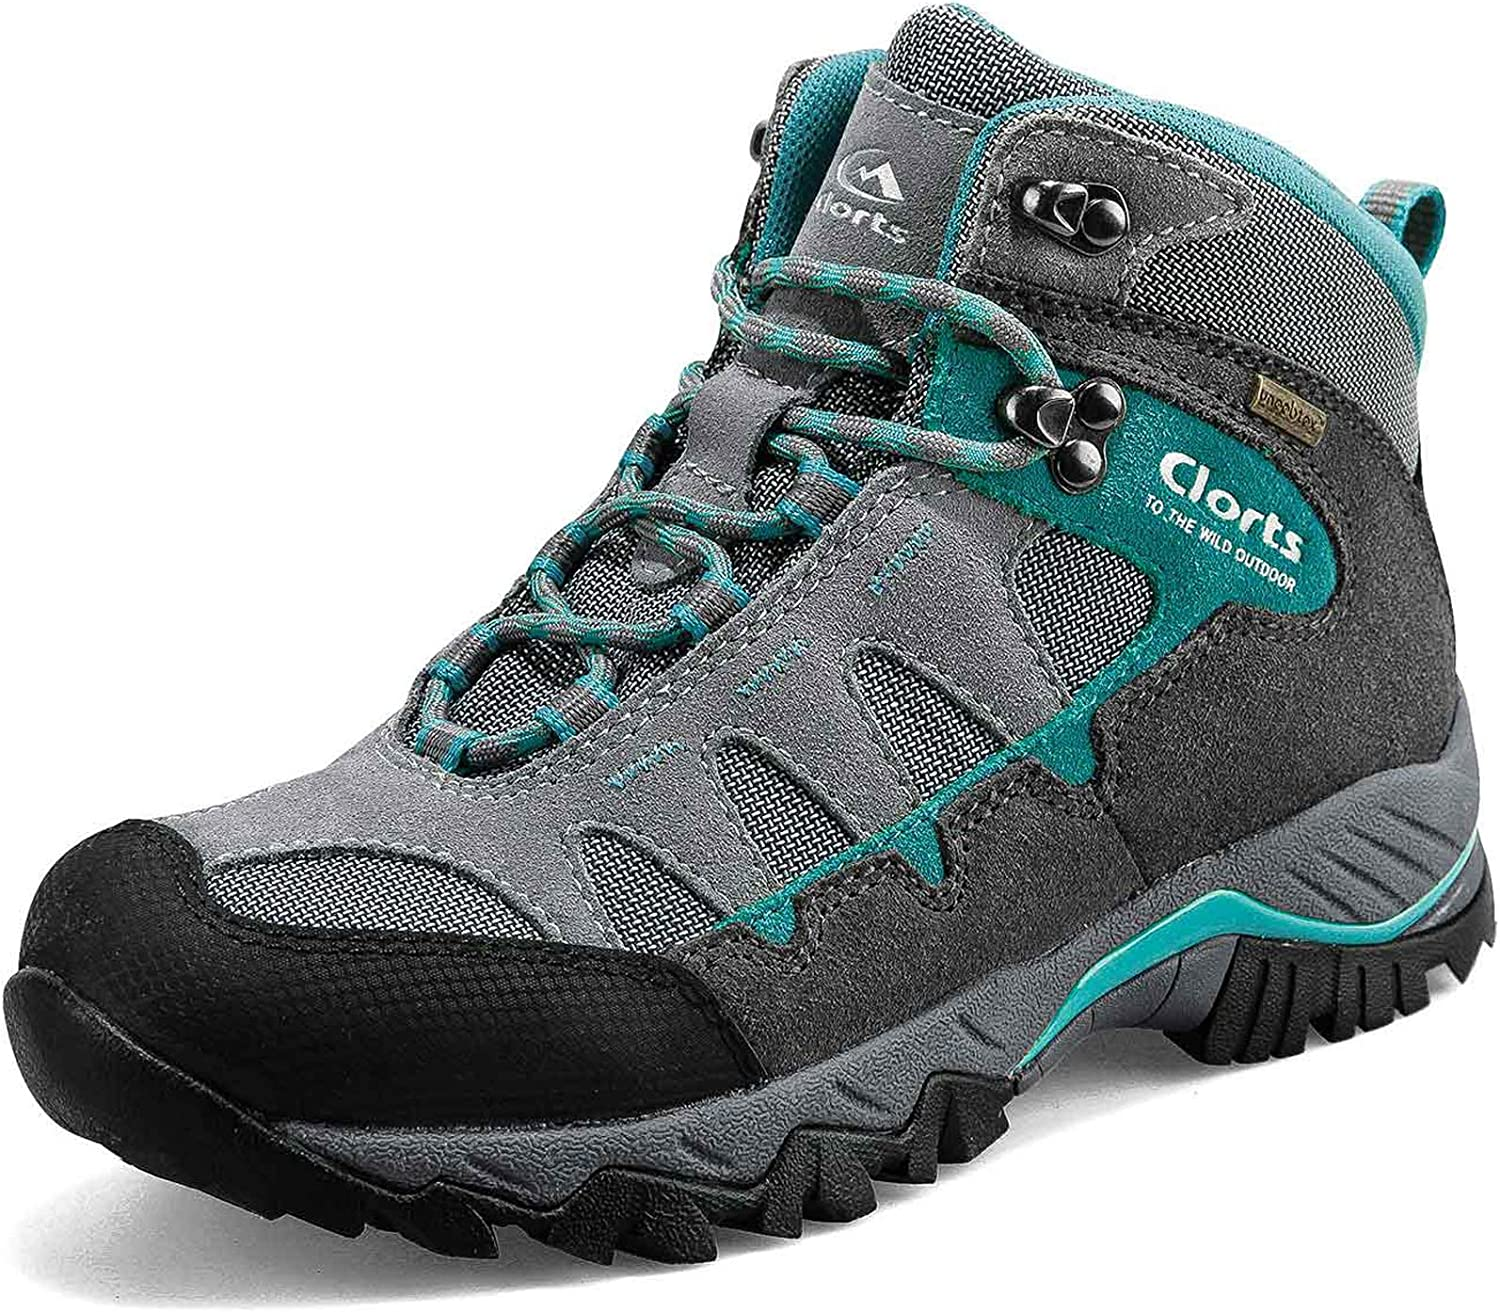 | Clorts Women's Pioneer Hiking Boots Waterproof Suede Leather Lightweight Hiking Shoes | Hiking Boots